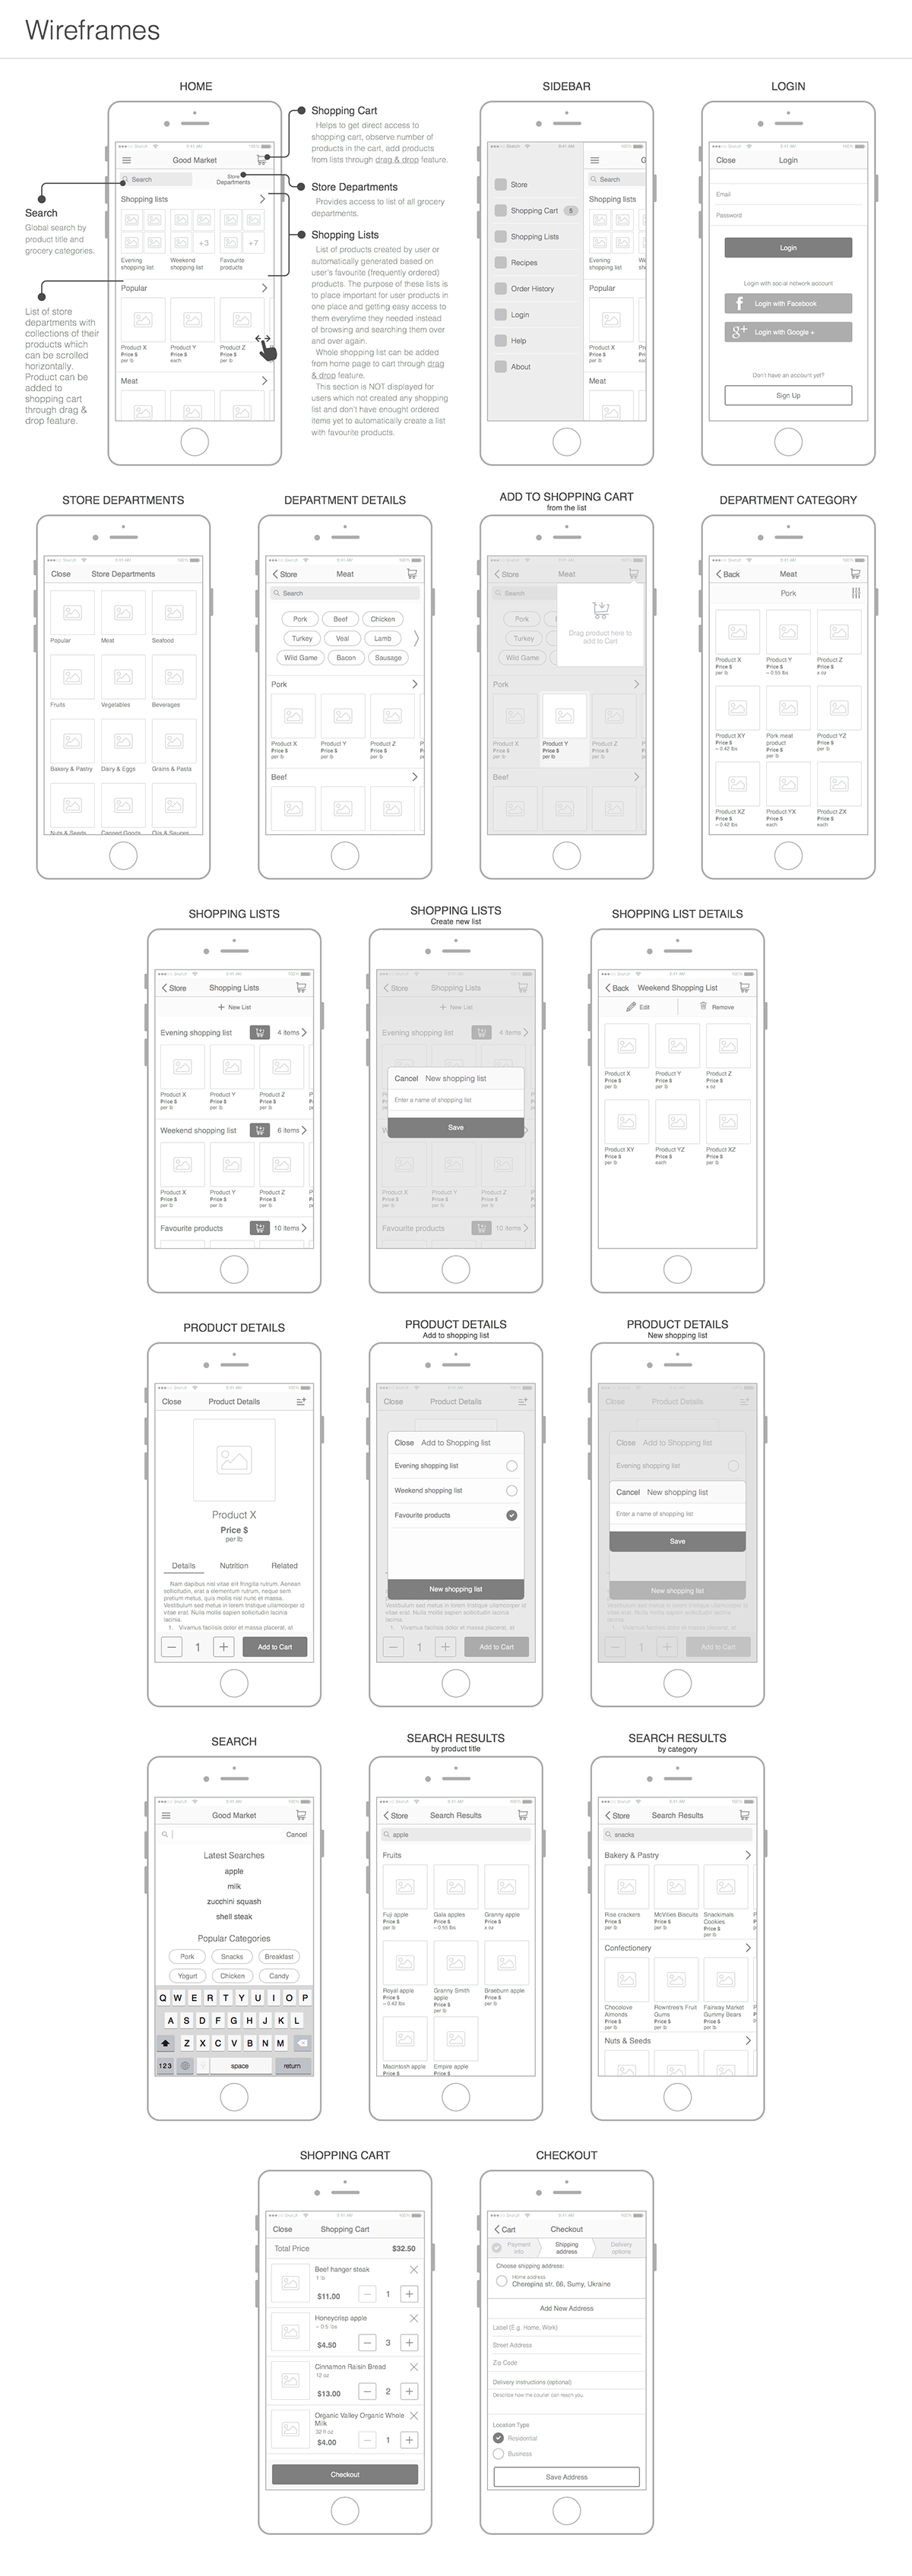 Ux Wireframes For Online Grocery Shopping Mobile App On Behance Wireframe App Design Wireframe Design